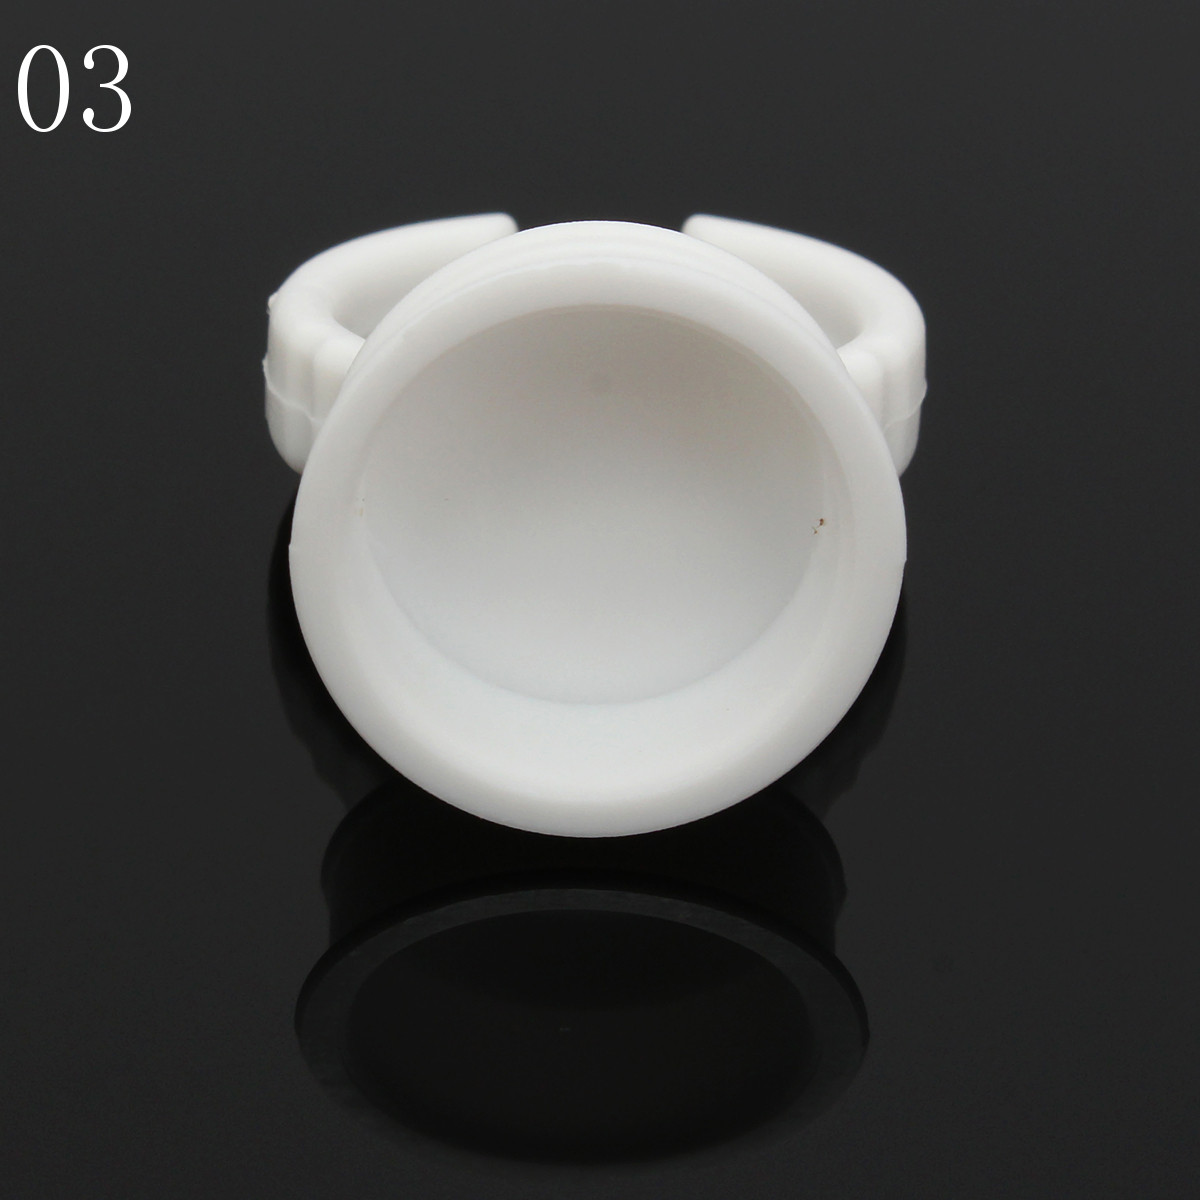 10Pcs White Plastic Ring Ink Tattoo Cups Tattoo Supplies Permanent Makeup